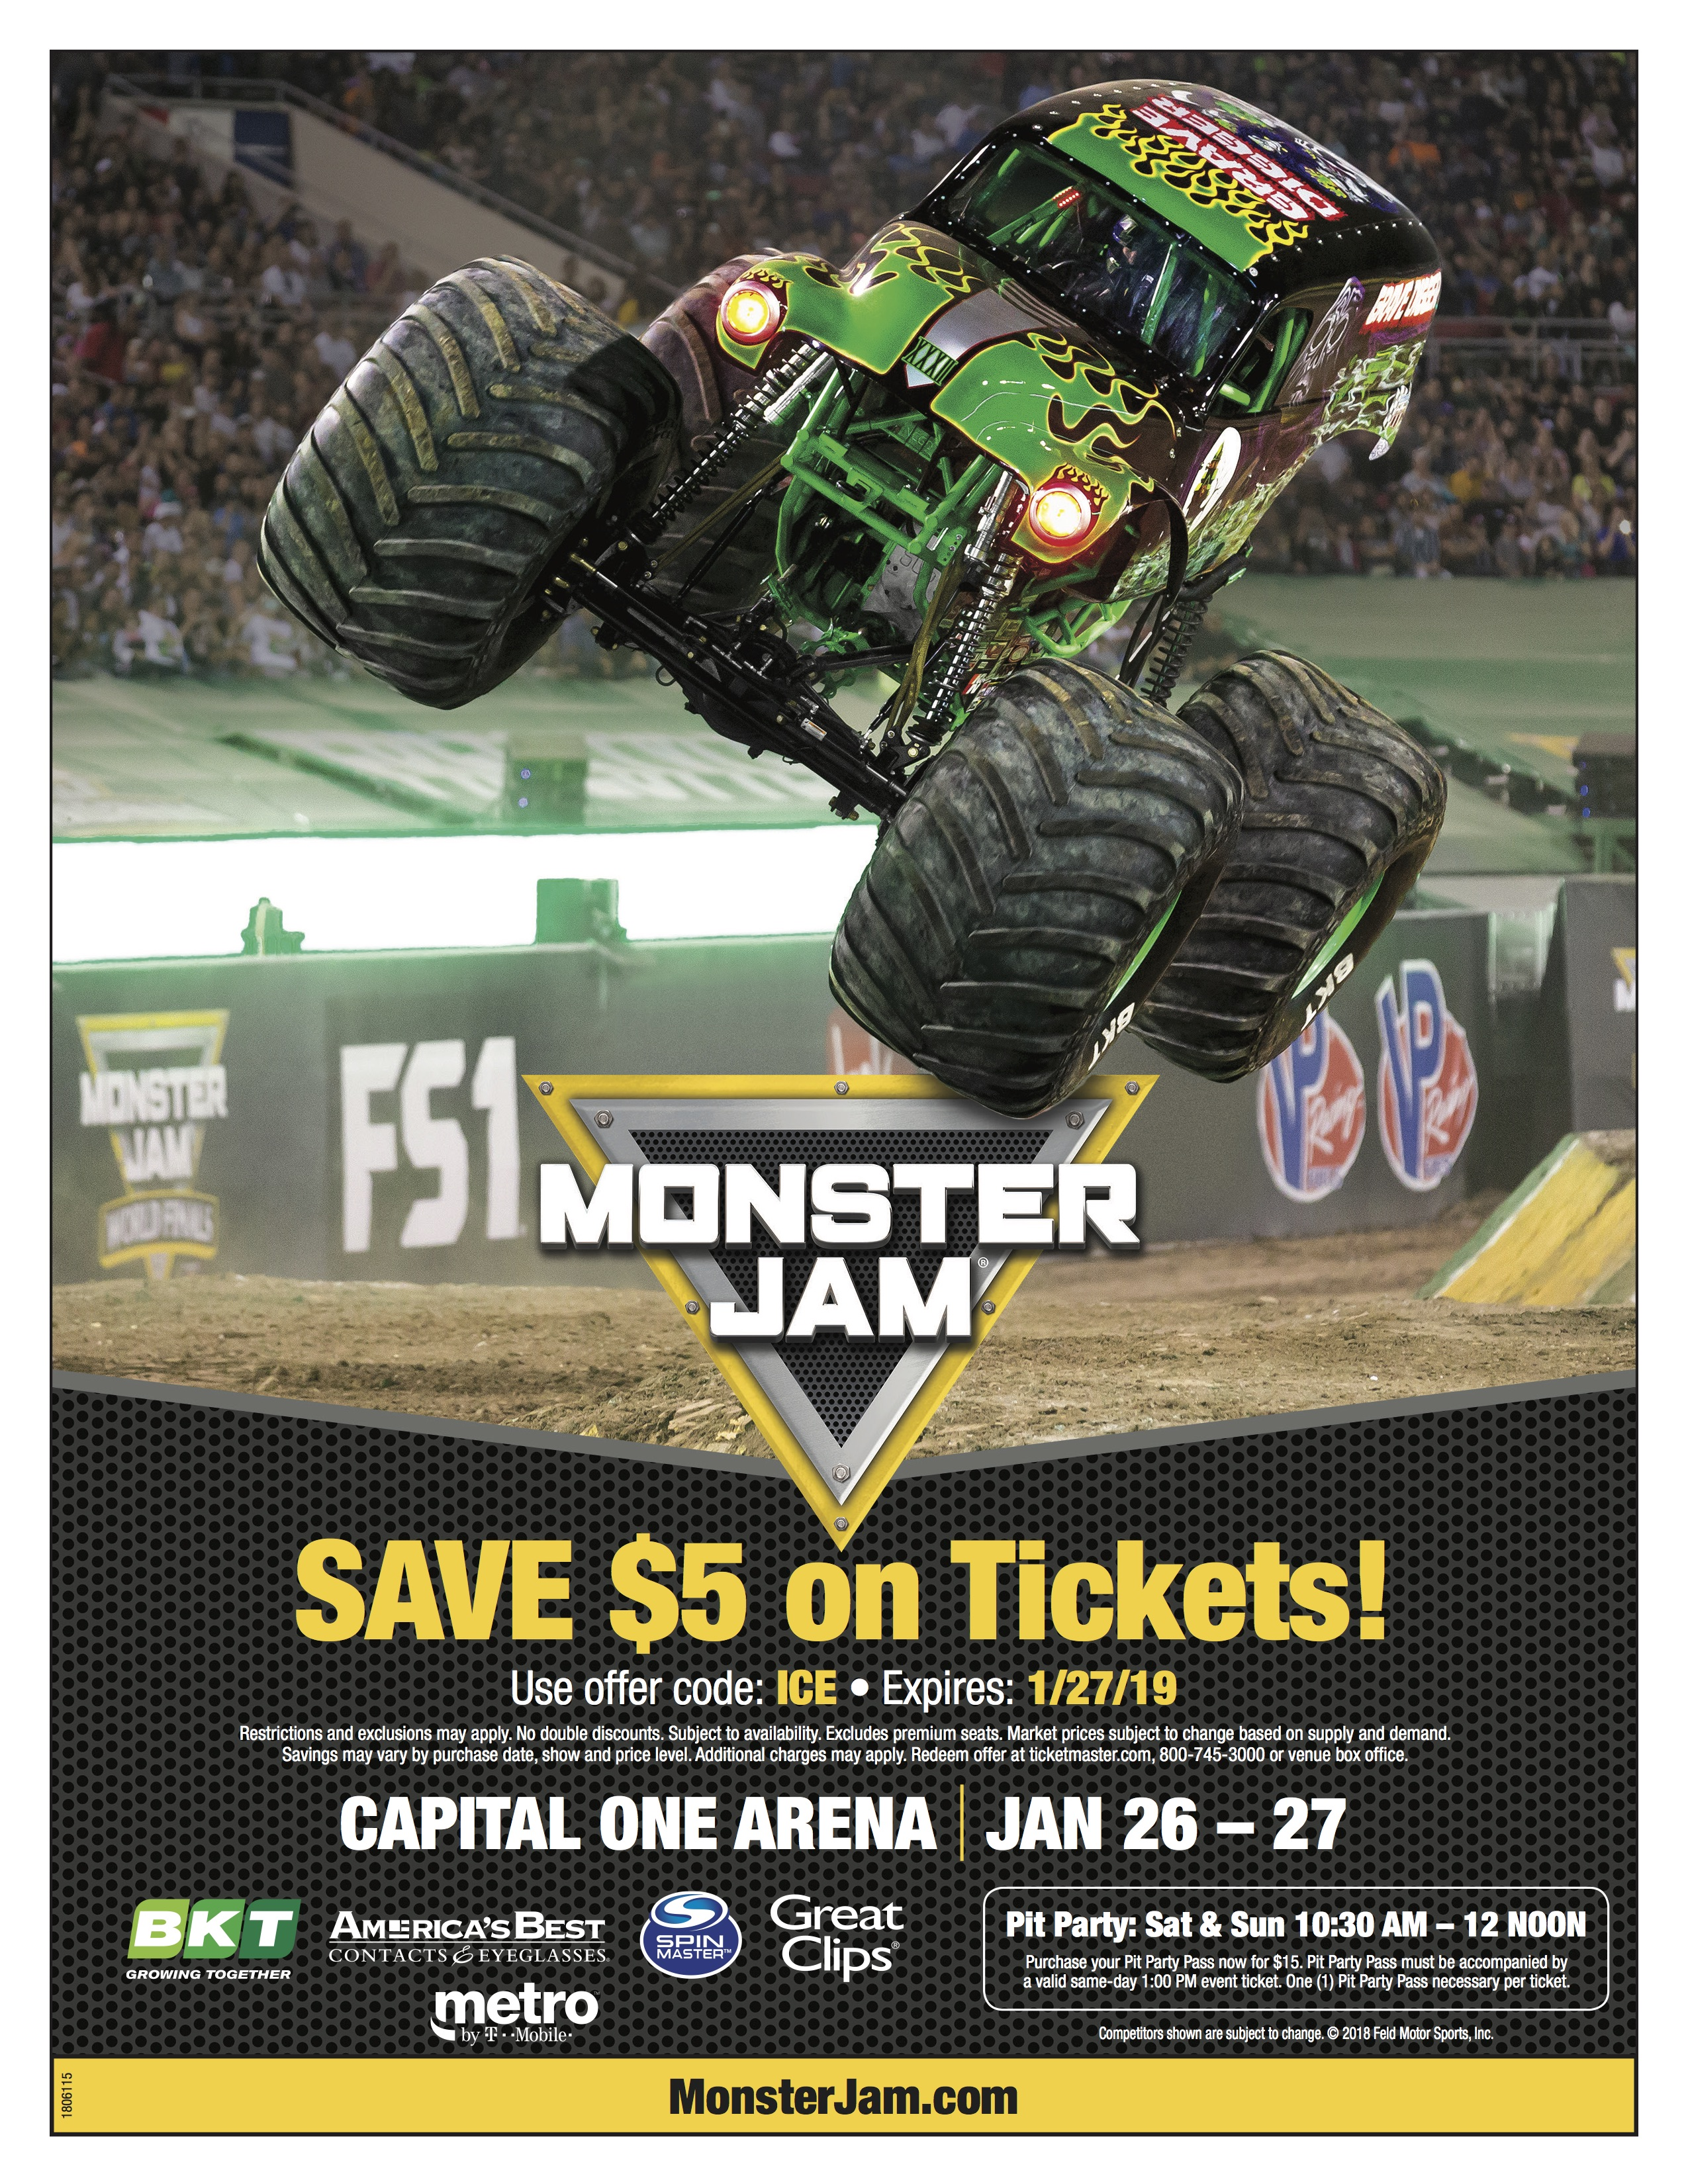 save $5 on tickets with code: ICE